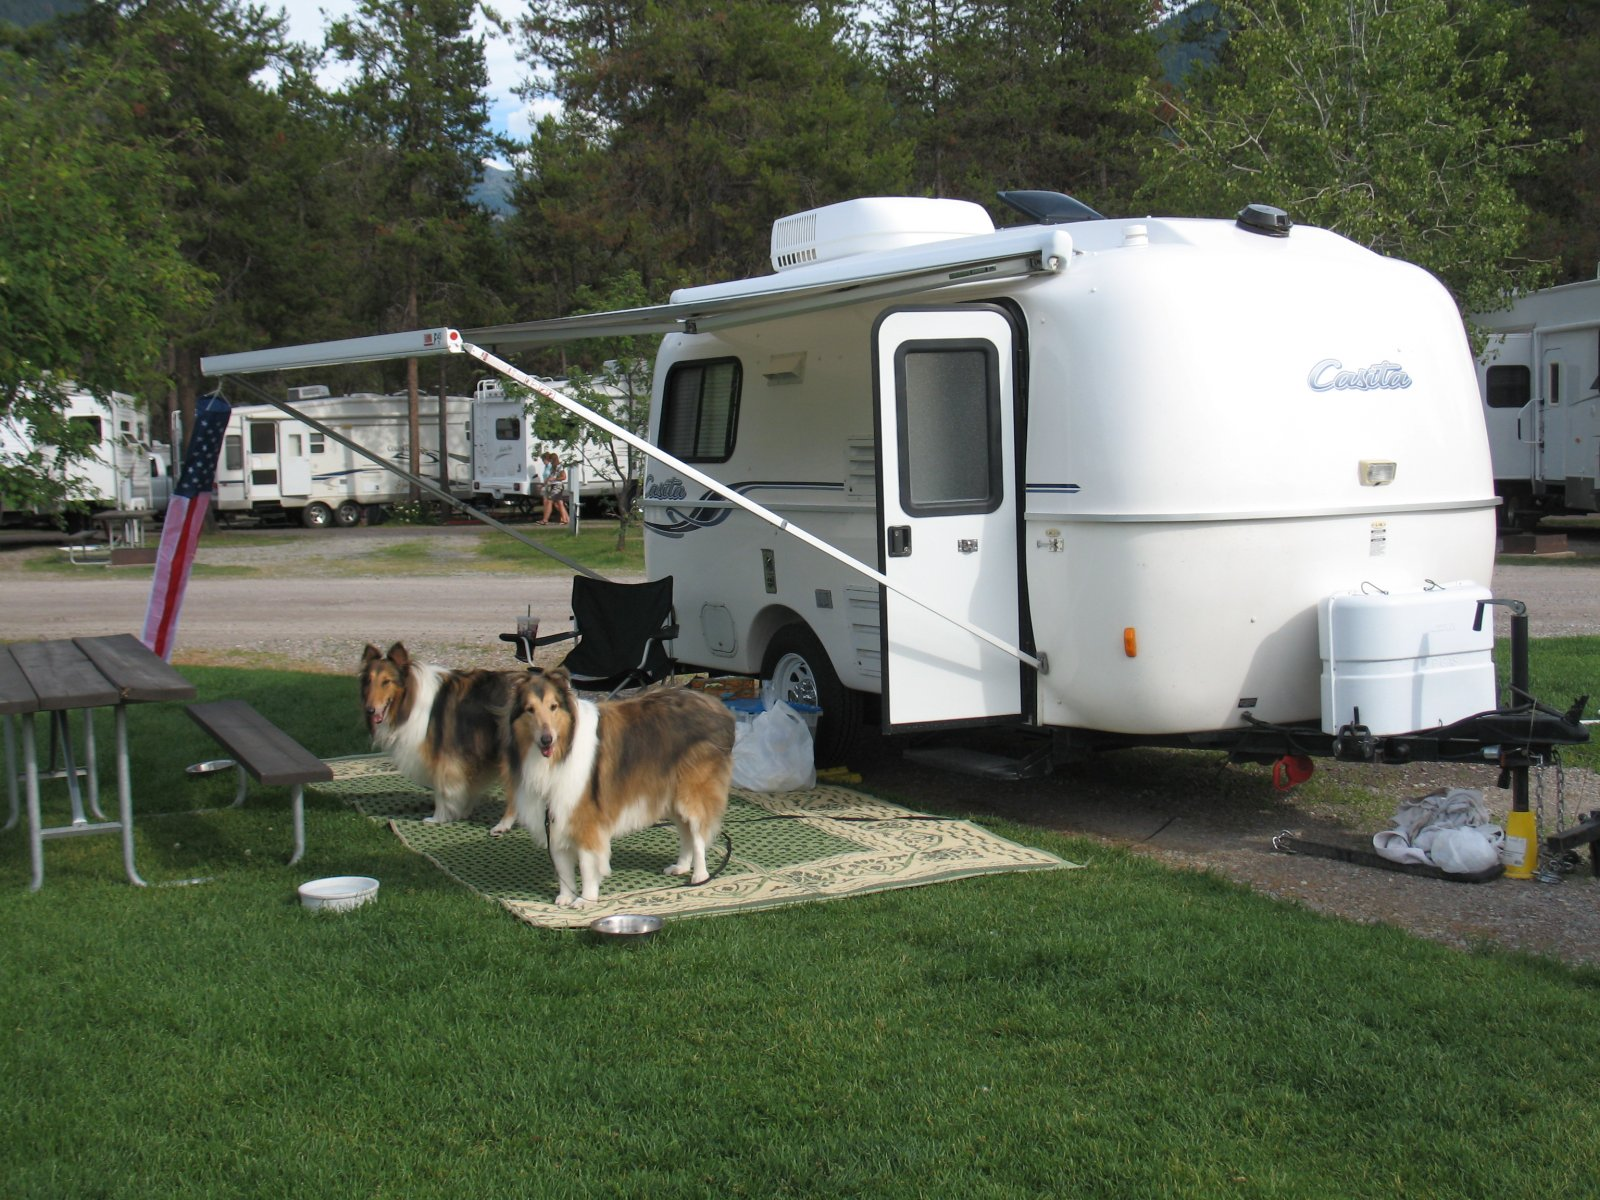 Click image for larger version  Name:93 The Collies and the Casita.jpg Views:108 Size:388.9 KB ID:207985